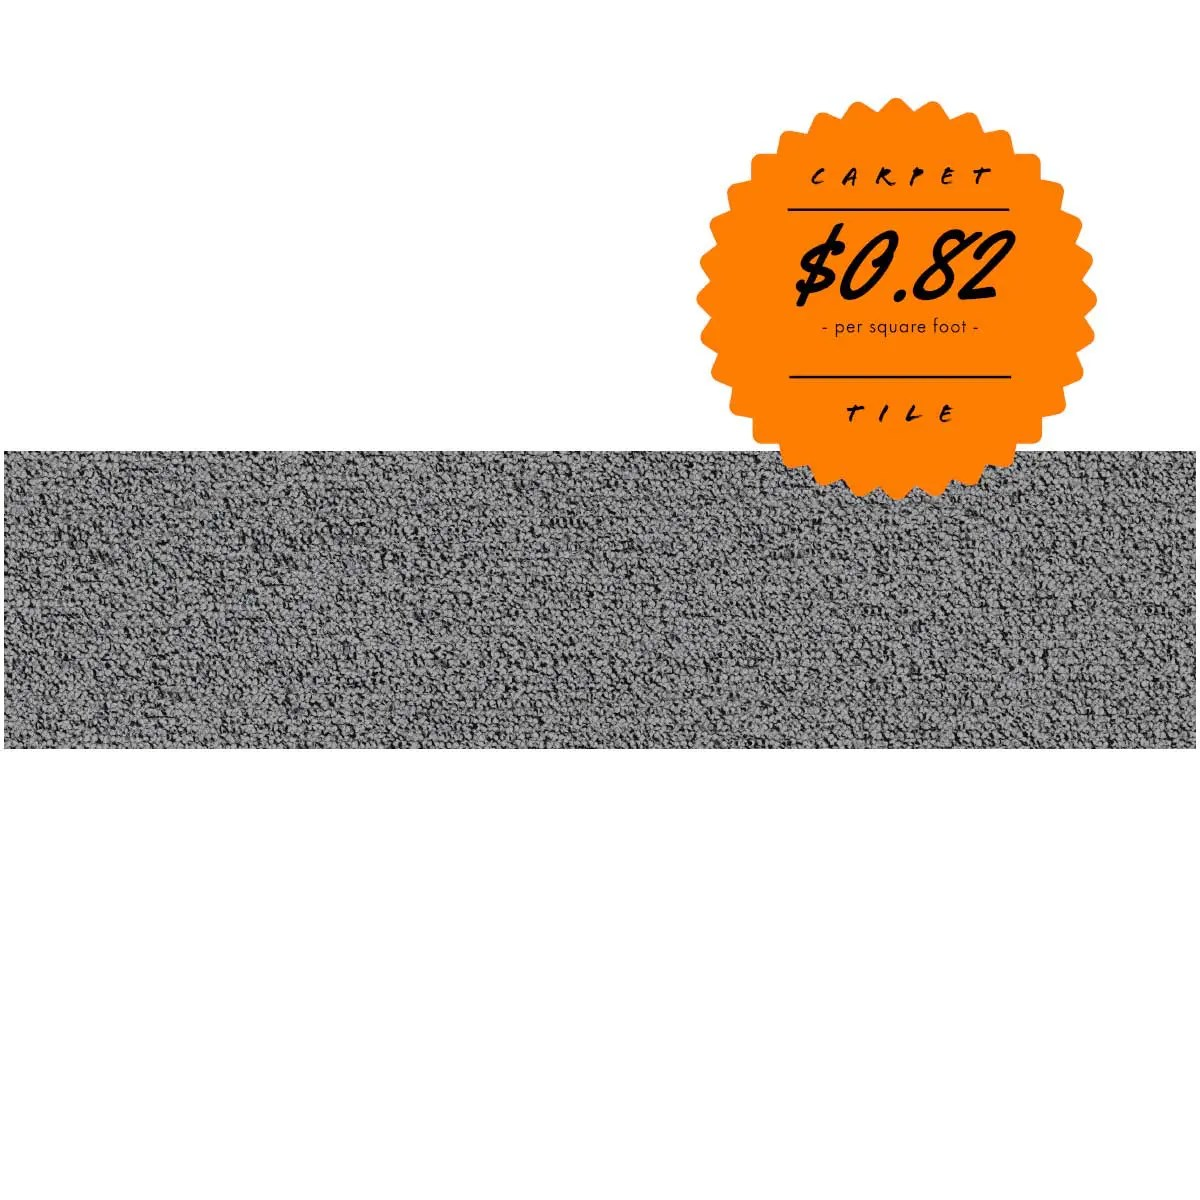 shaw haven collection nest tile fog 723 sf avail